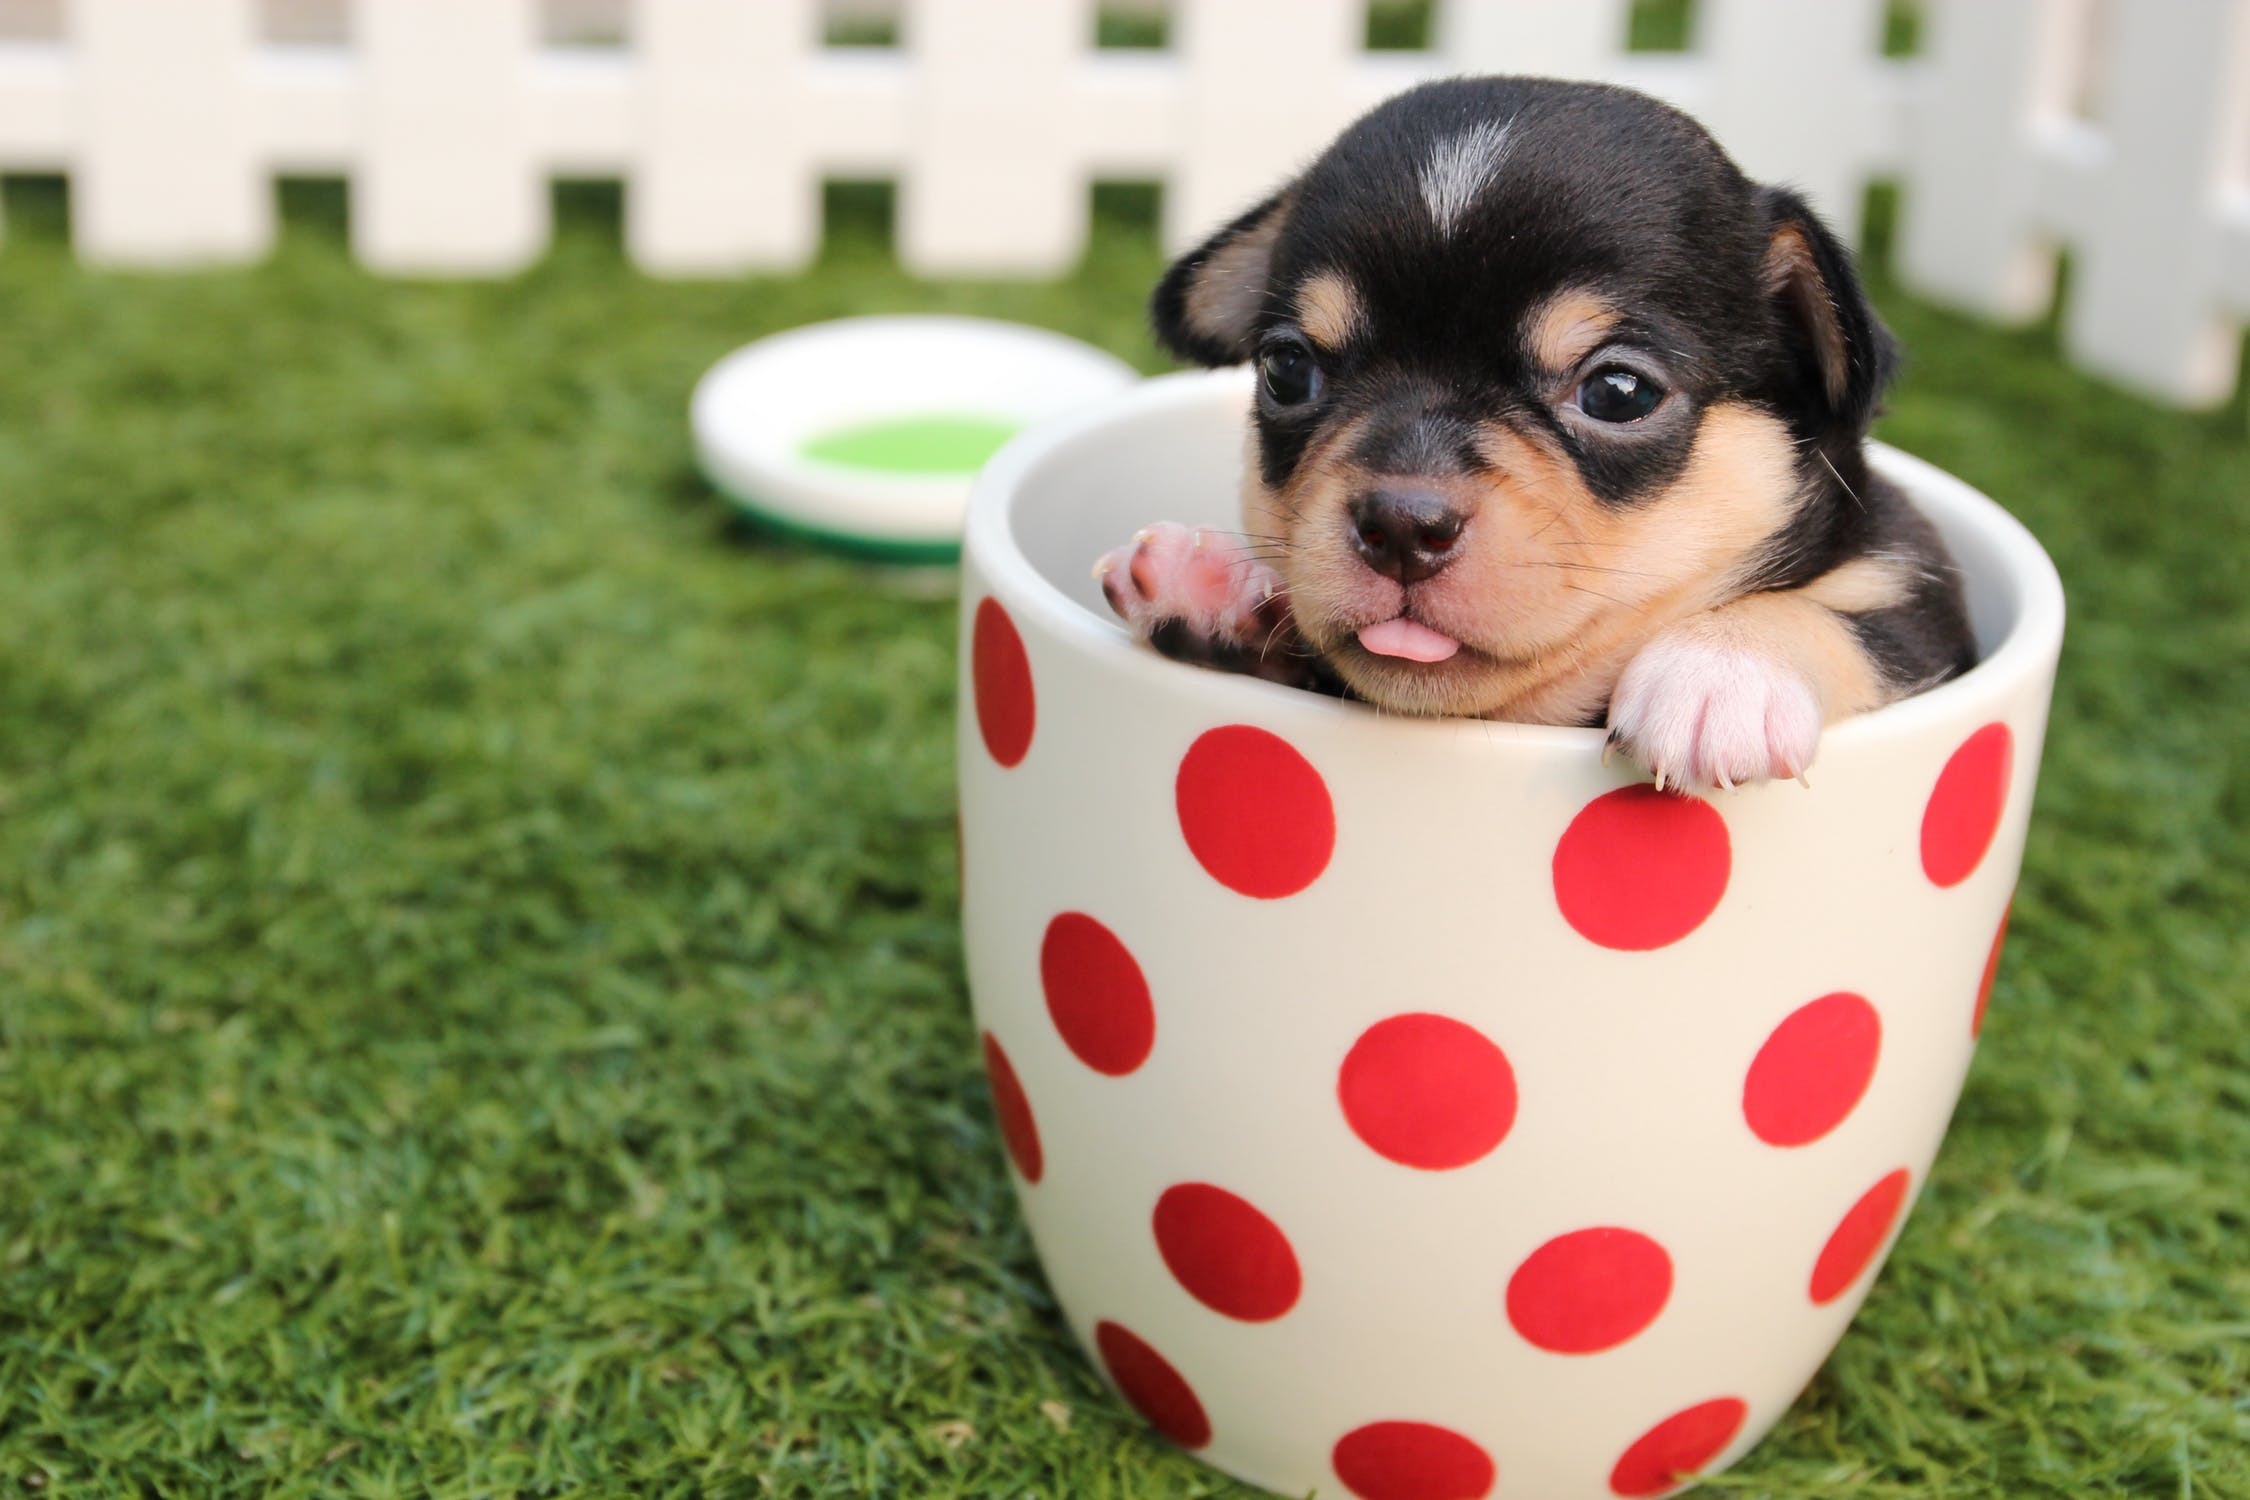 104 Captions To Capture Your Dog S Personality Perfectly For Instagram Healthy Tips